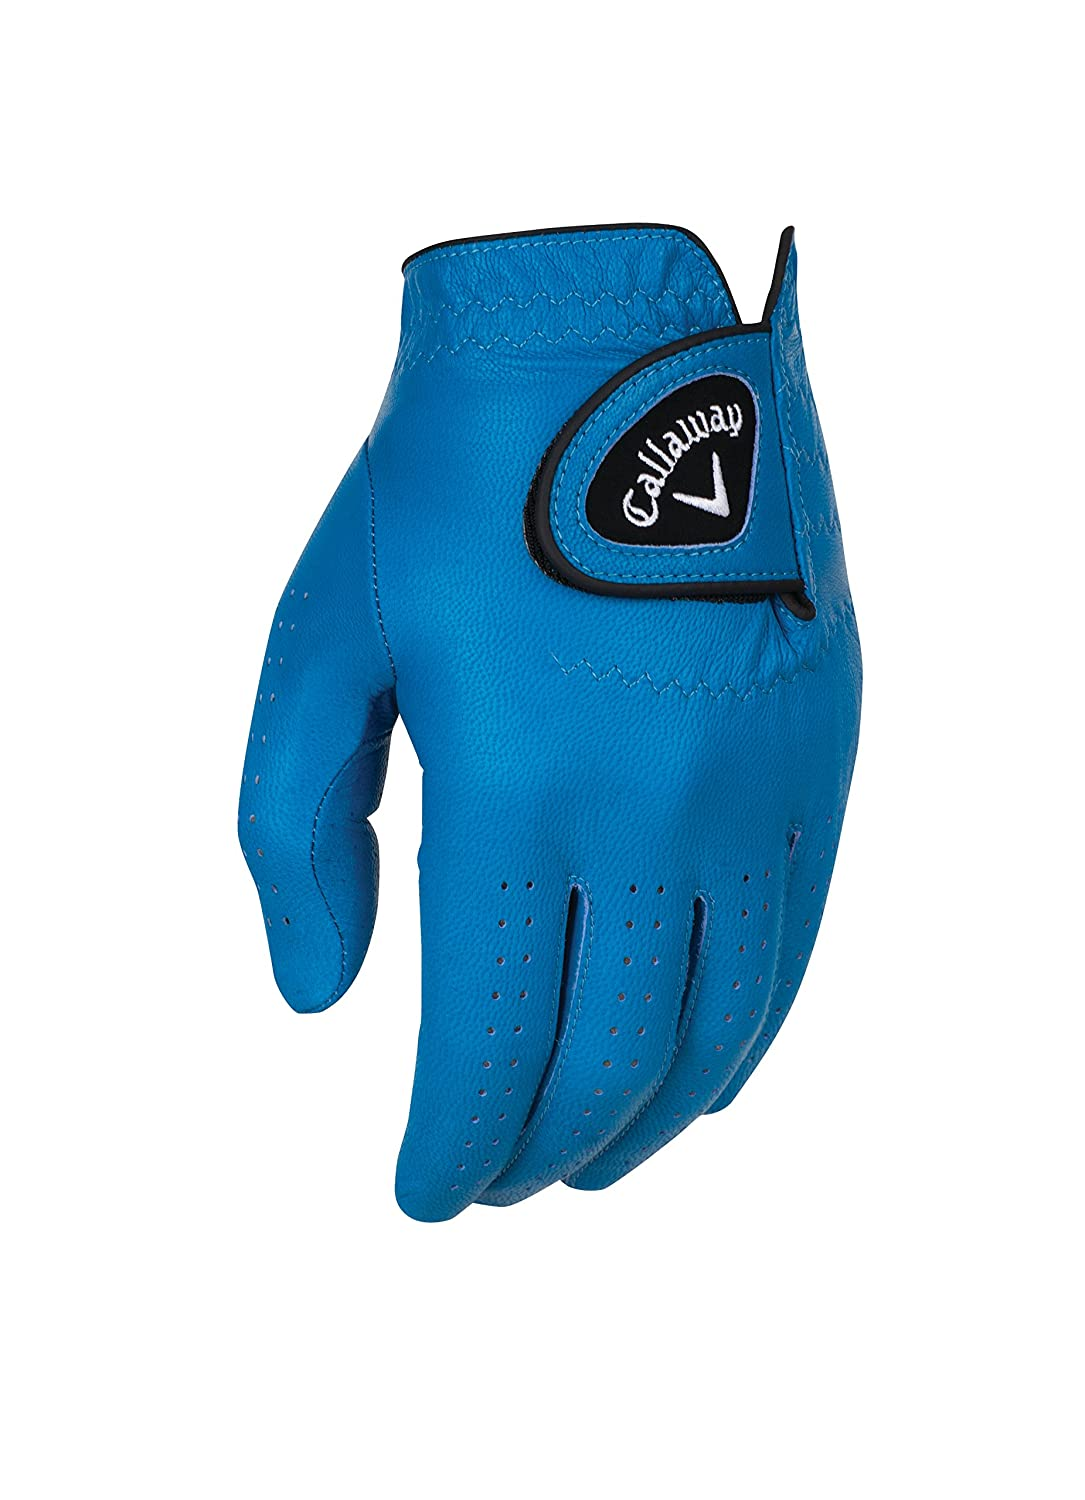 Womens leather gloves teal - Amazon Com Callaway Golf Opticolor Premium Full Color Leather Gloves Sports Outdoors